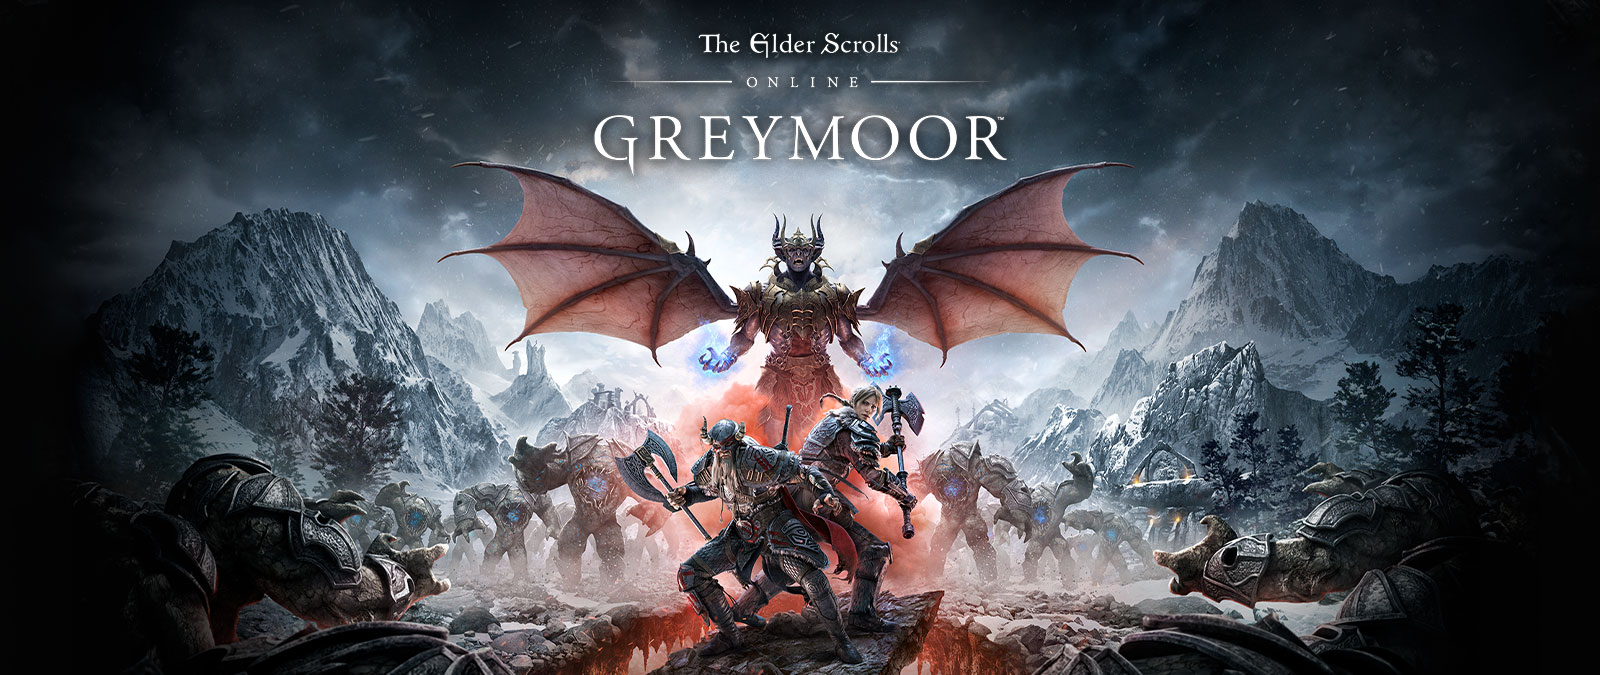 The Elder Scrolls Online Greymoor,角色站在一塊岩石上,背景是 Greymoor